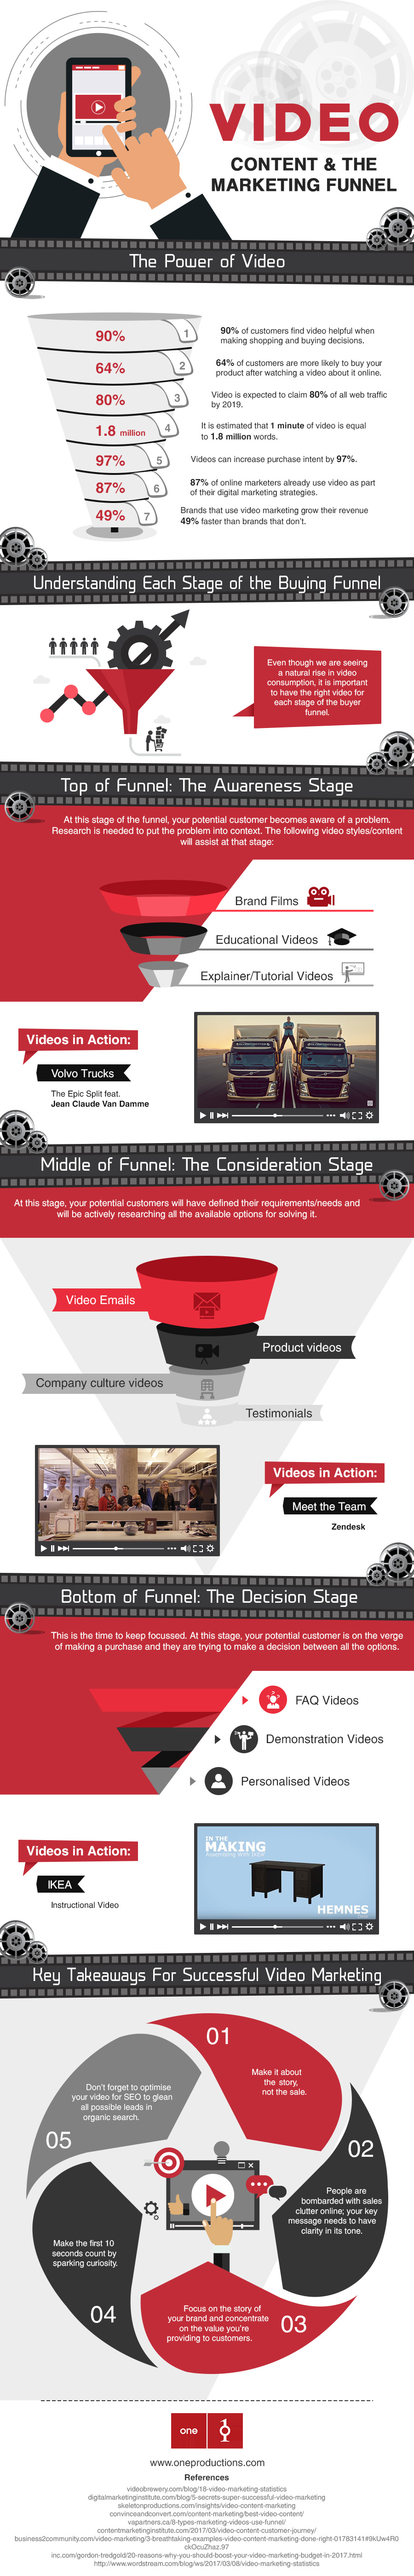 Video Content Role in Marketing Funnel Infographic